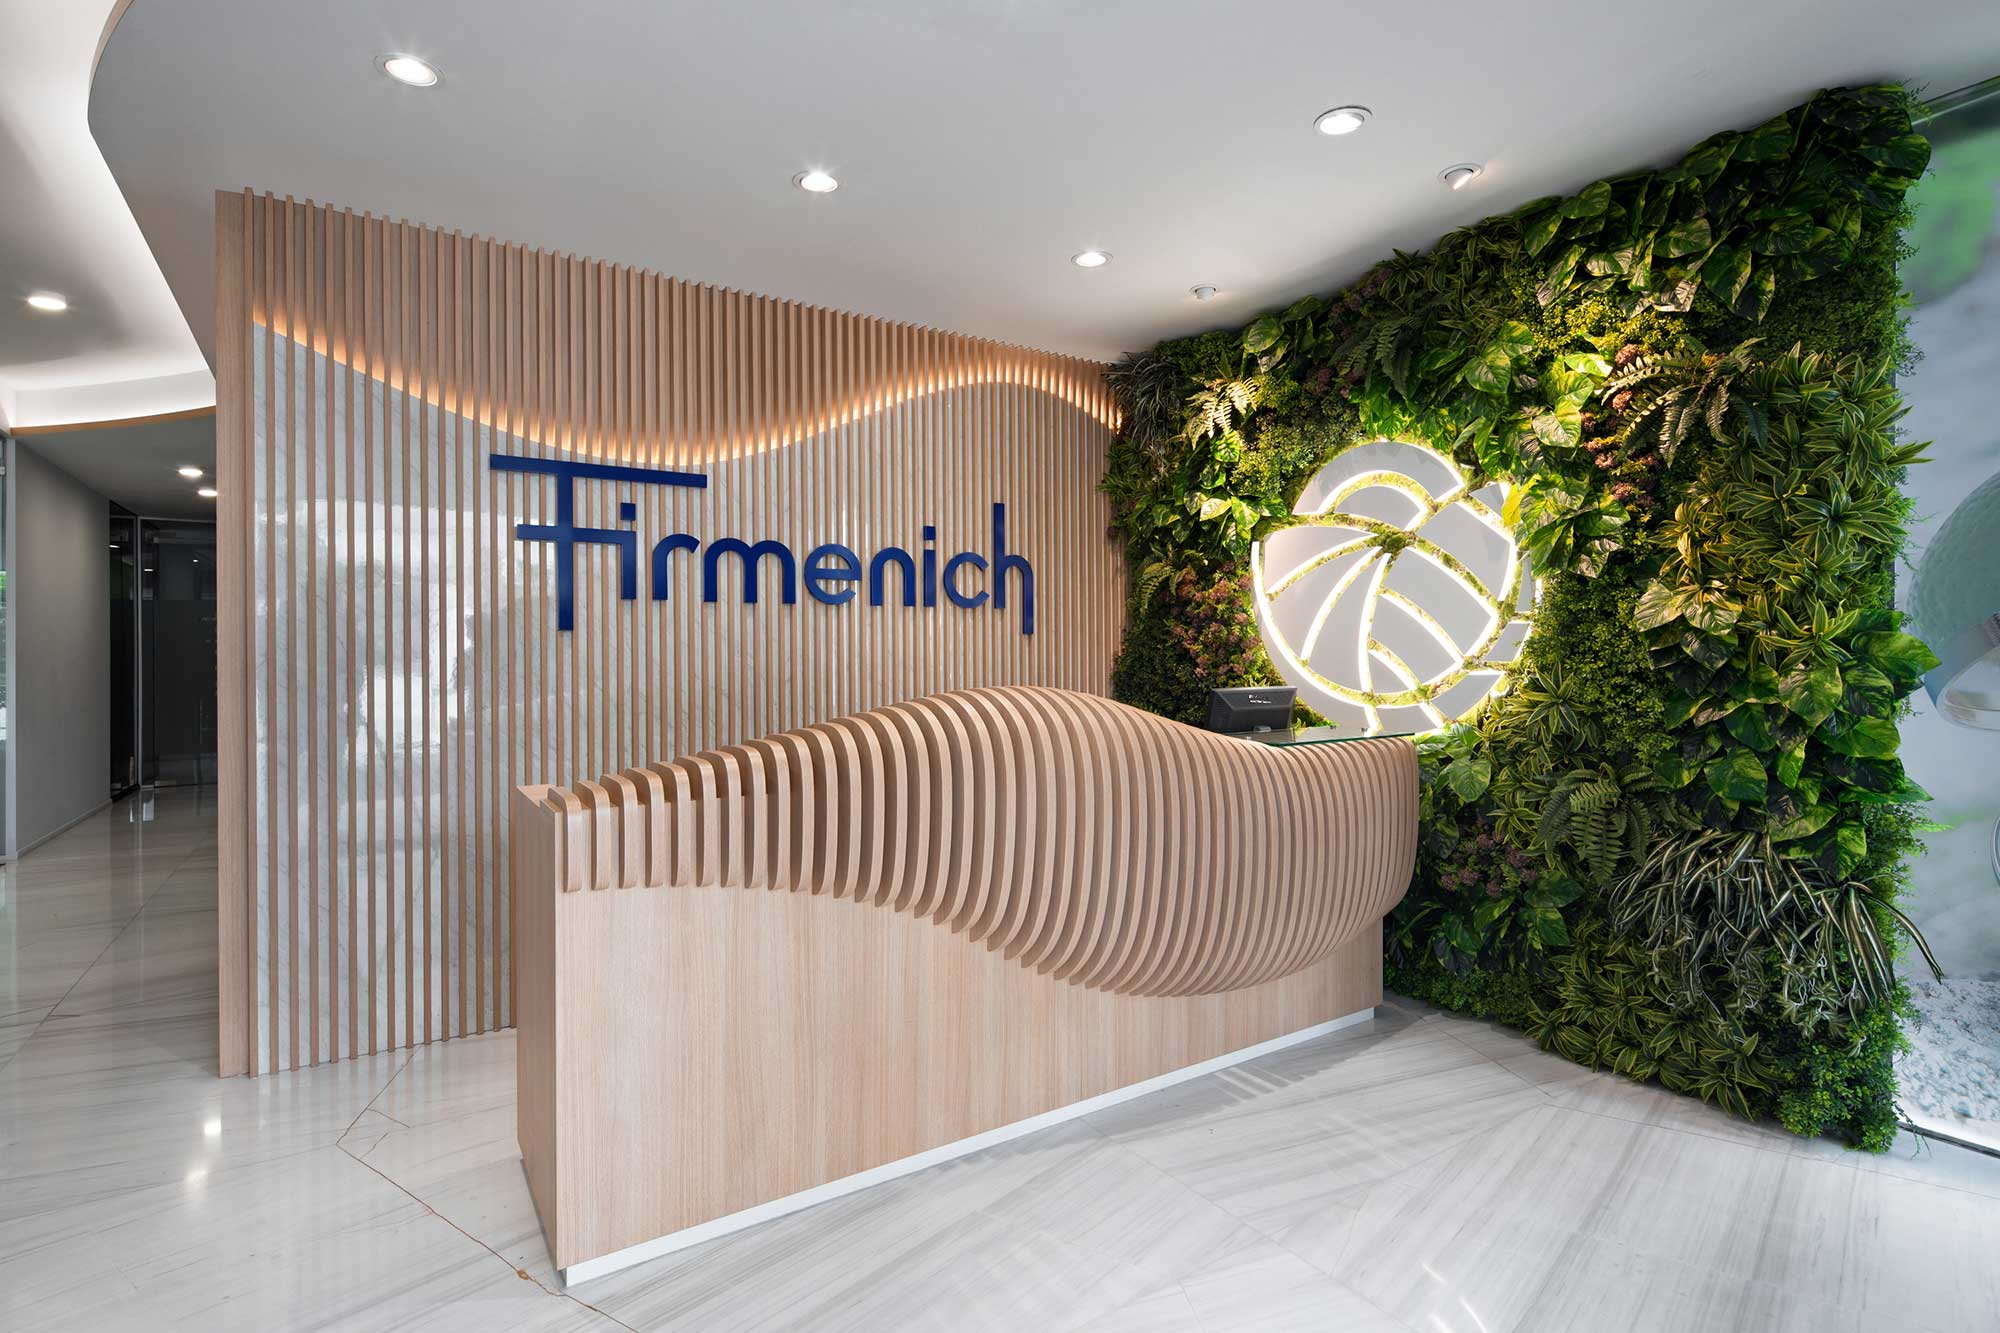 Firmenich's new reception, using natural elements to reflect their core value. Interior Design + build by AVIP.